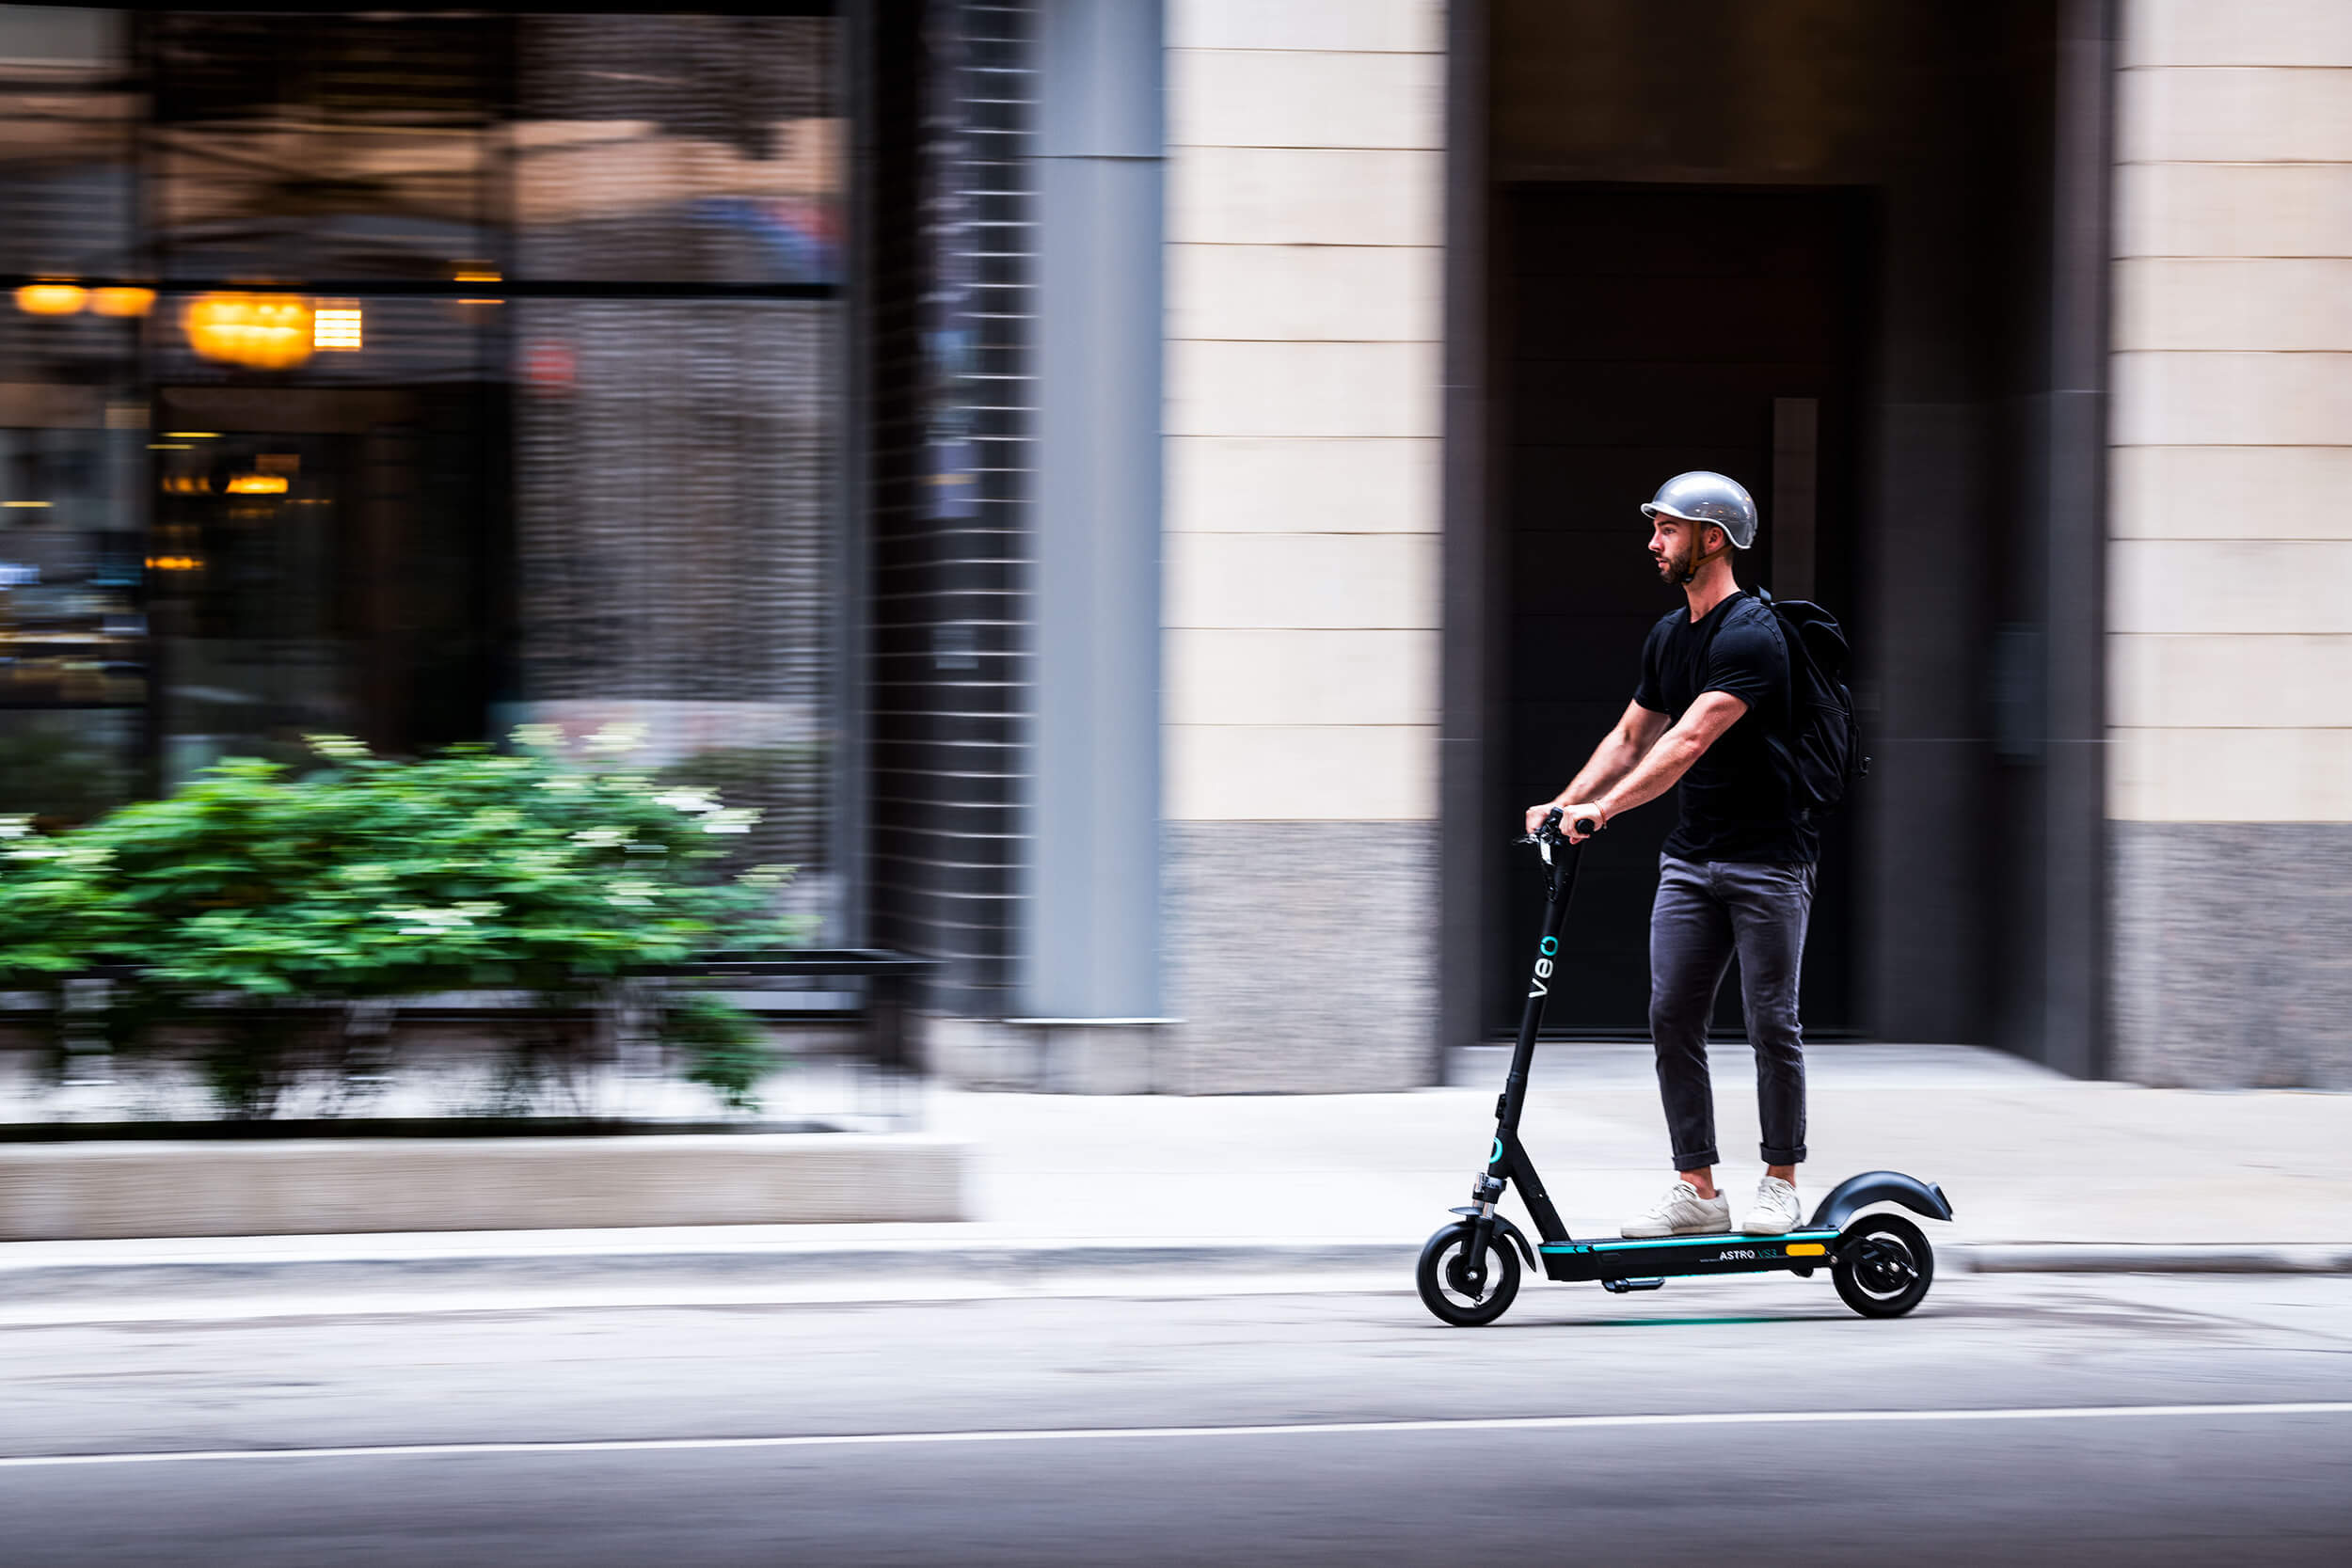 Man riding Veo scooter on a city street